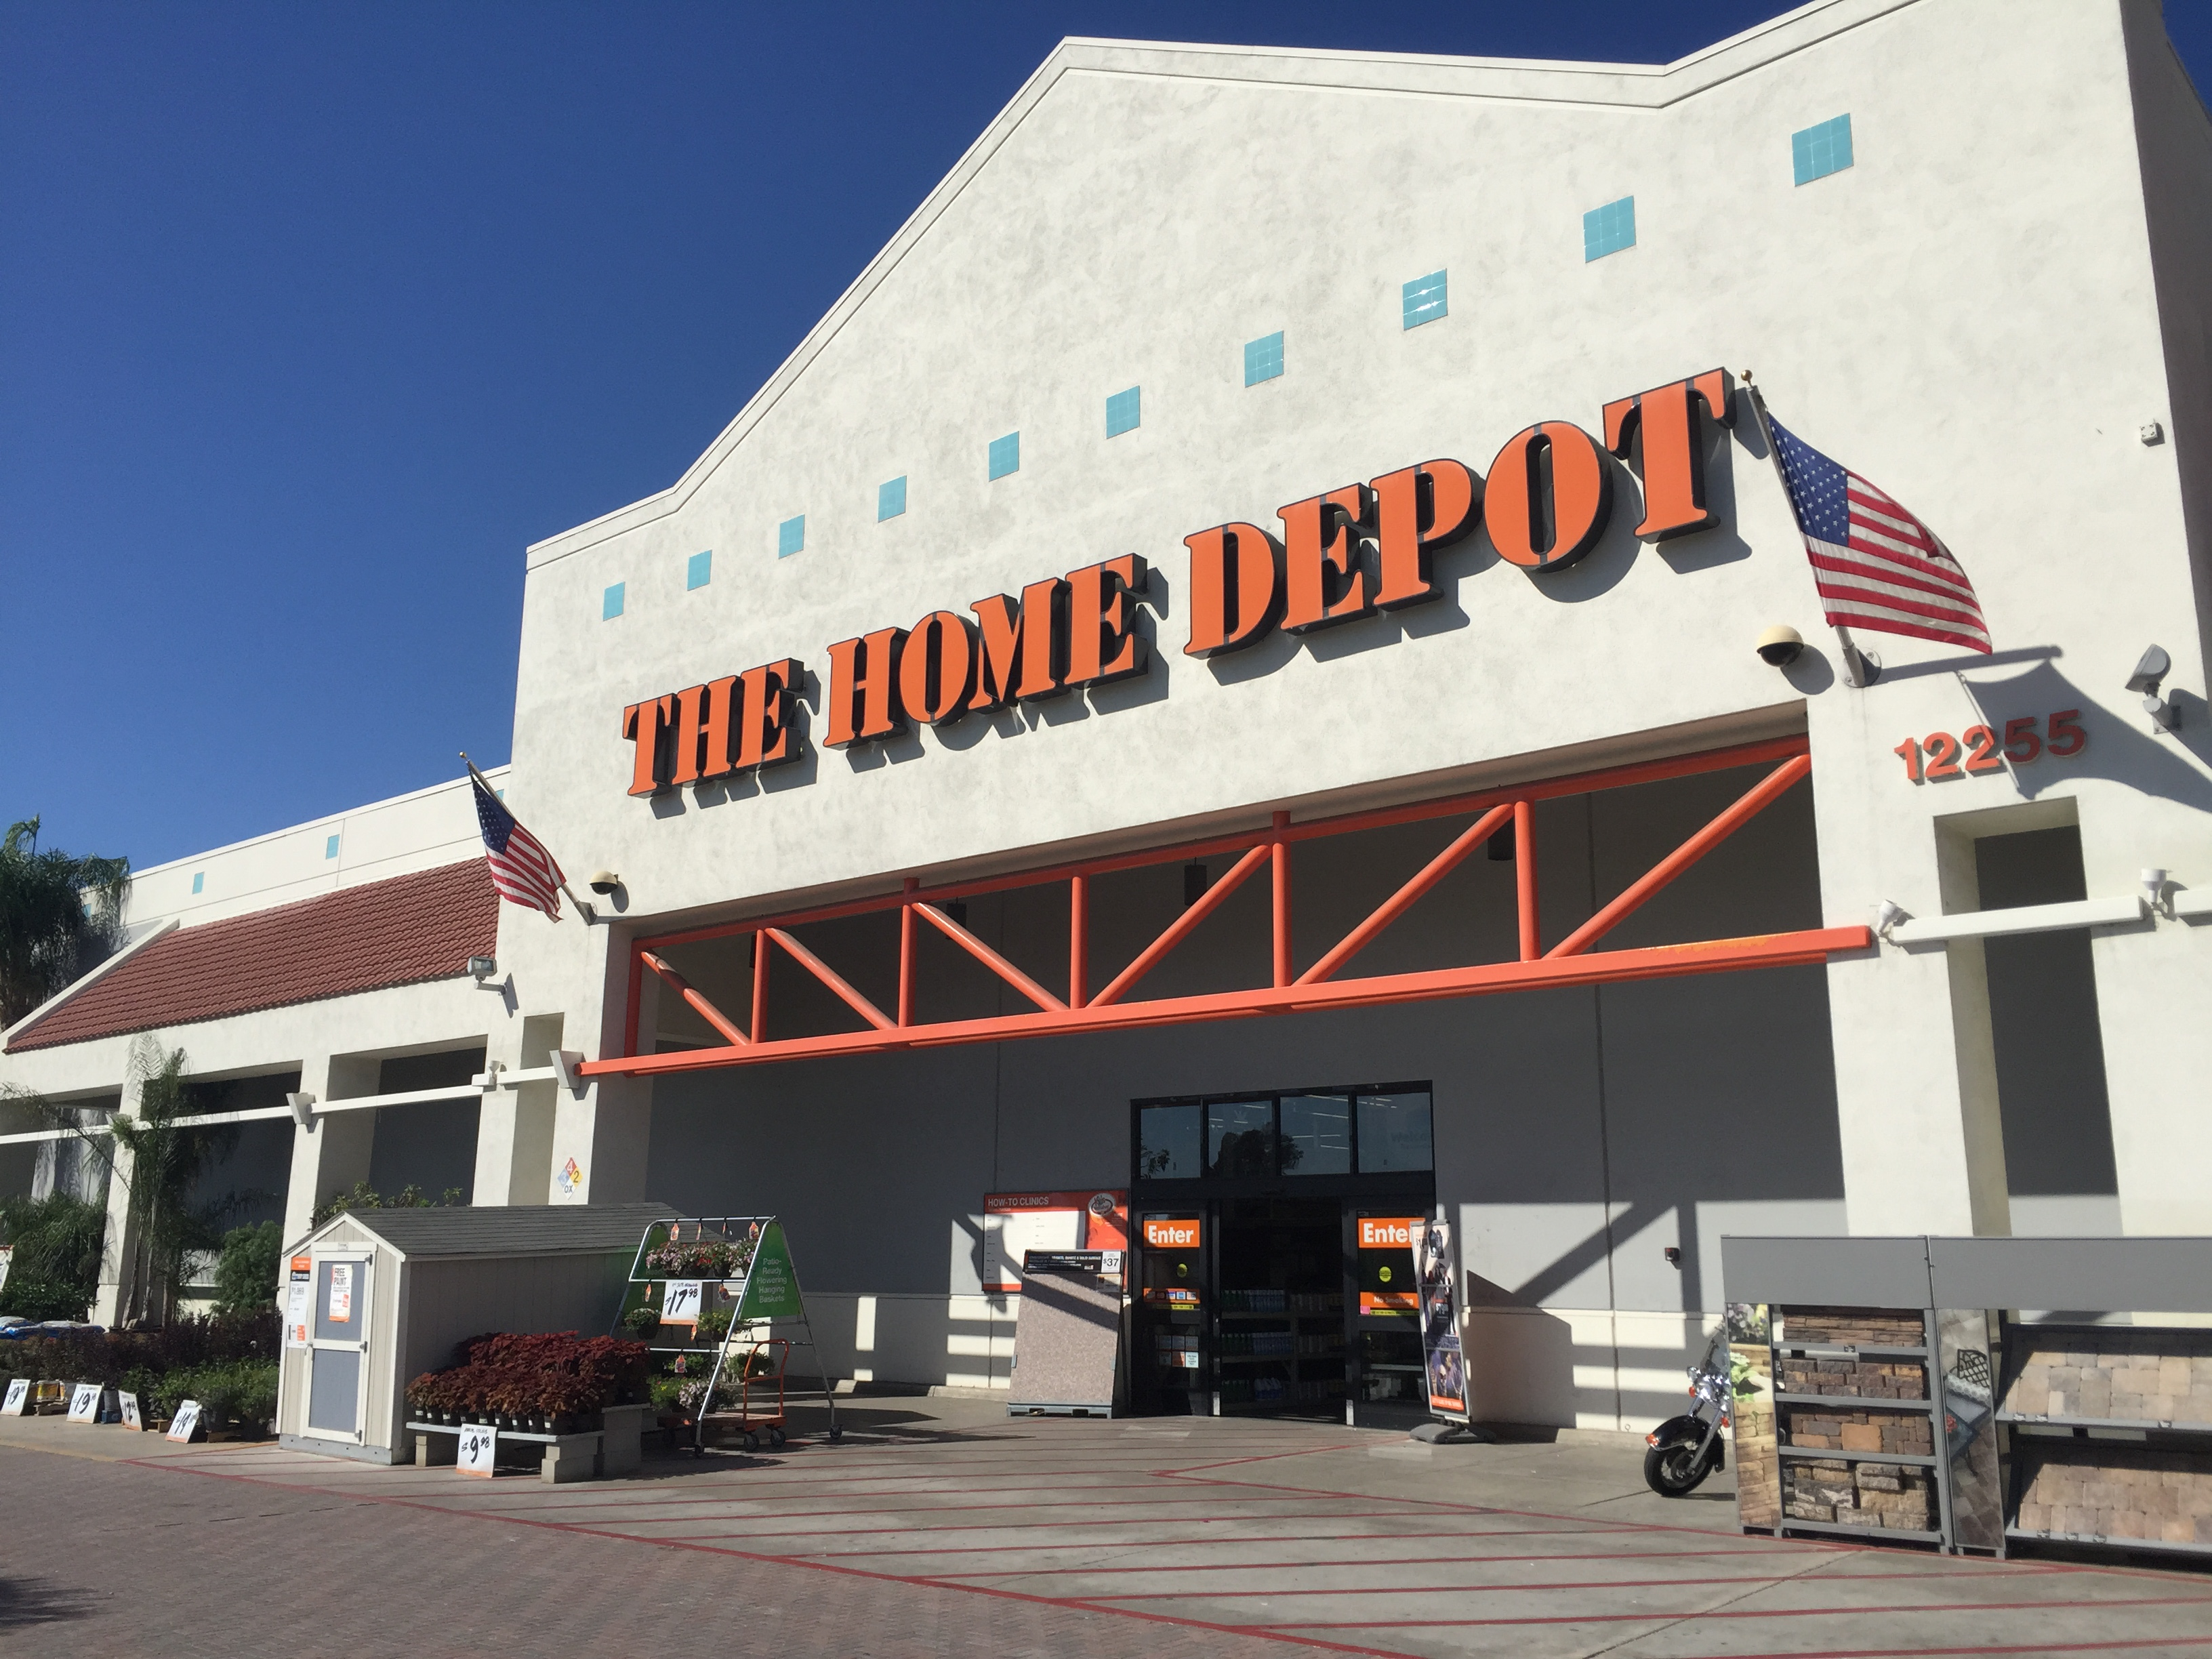 The Home Depot  Moreno Valley, Ca  Business Page